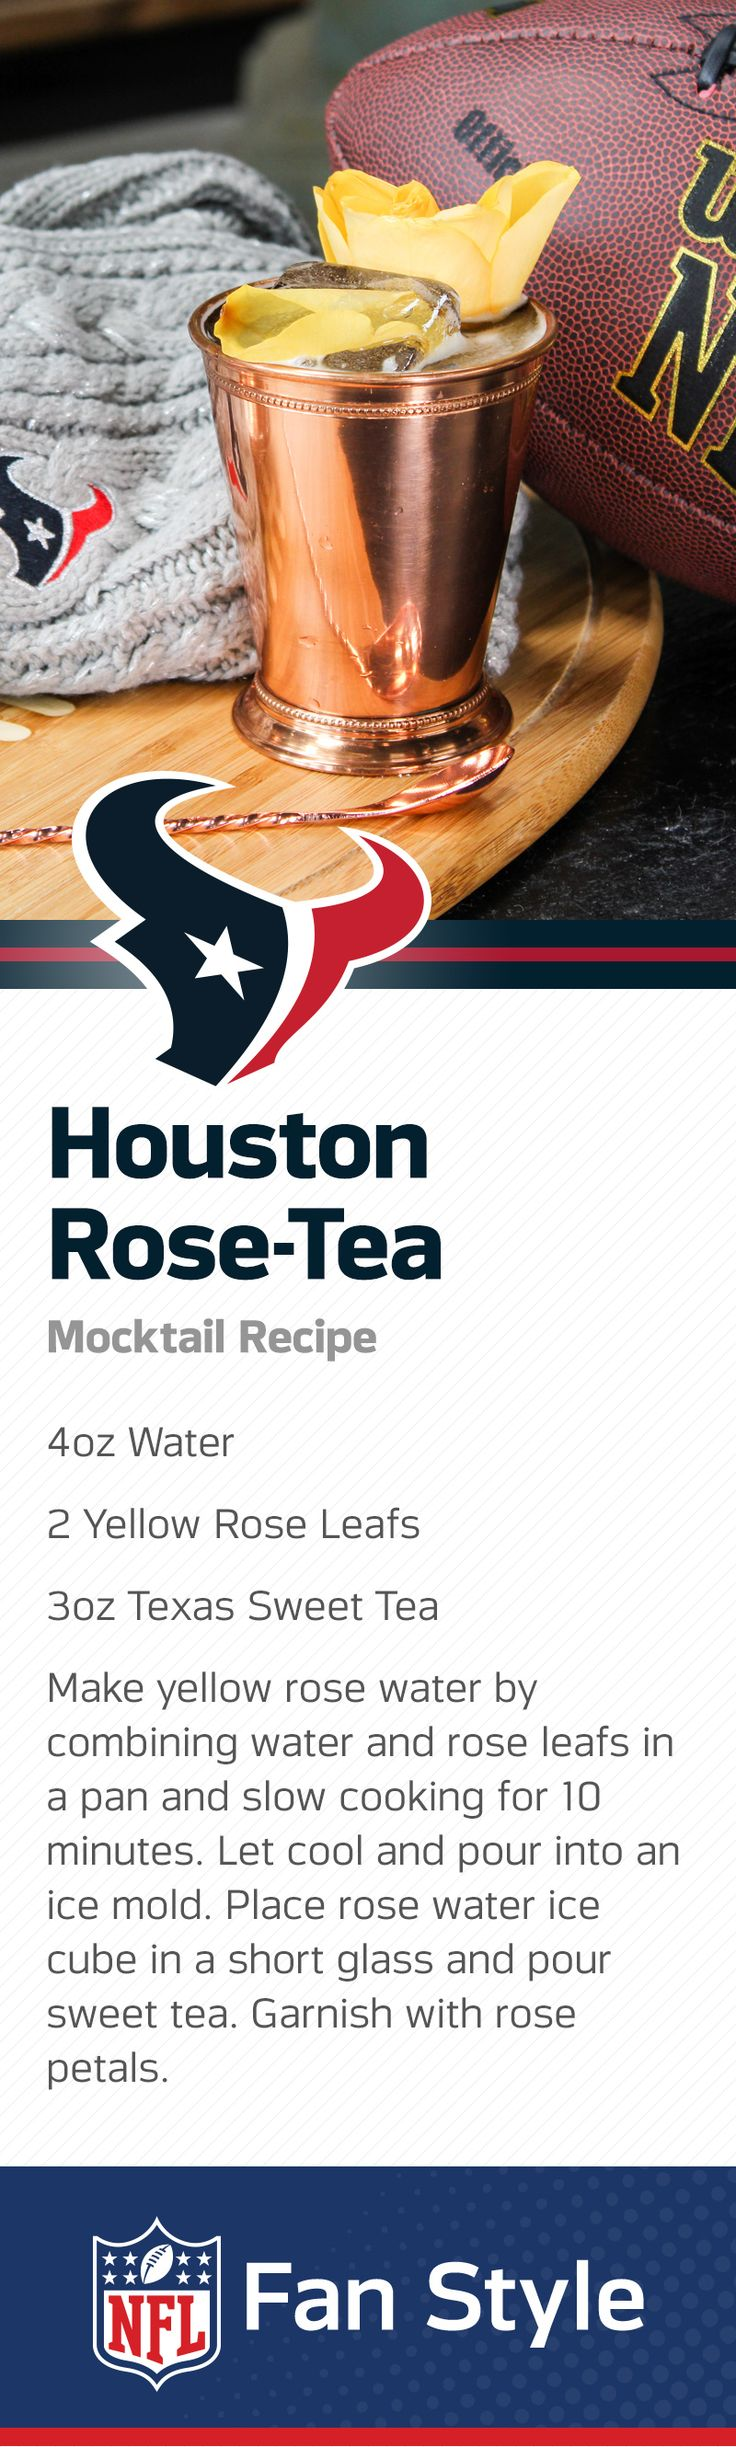 You can sure work up a mighty thirst deep in the heart of Texas. Quench it with a refreshing local flavor when you mix up a batch of these rosewater and sweet-tea mocktails. Pair this with some Houston football and you're good to go.